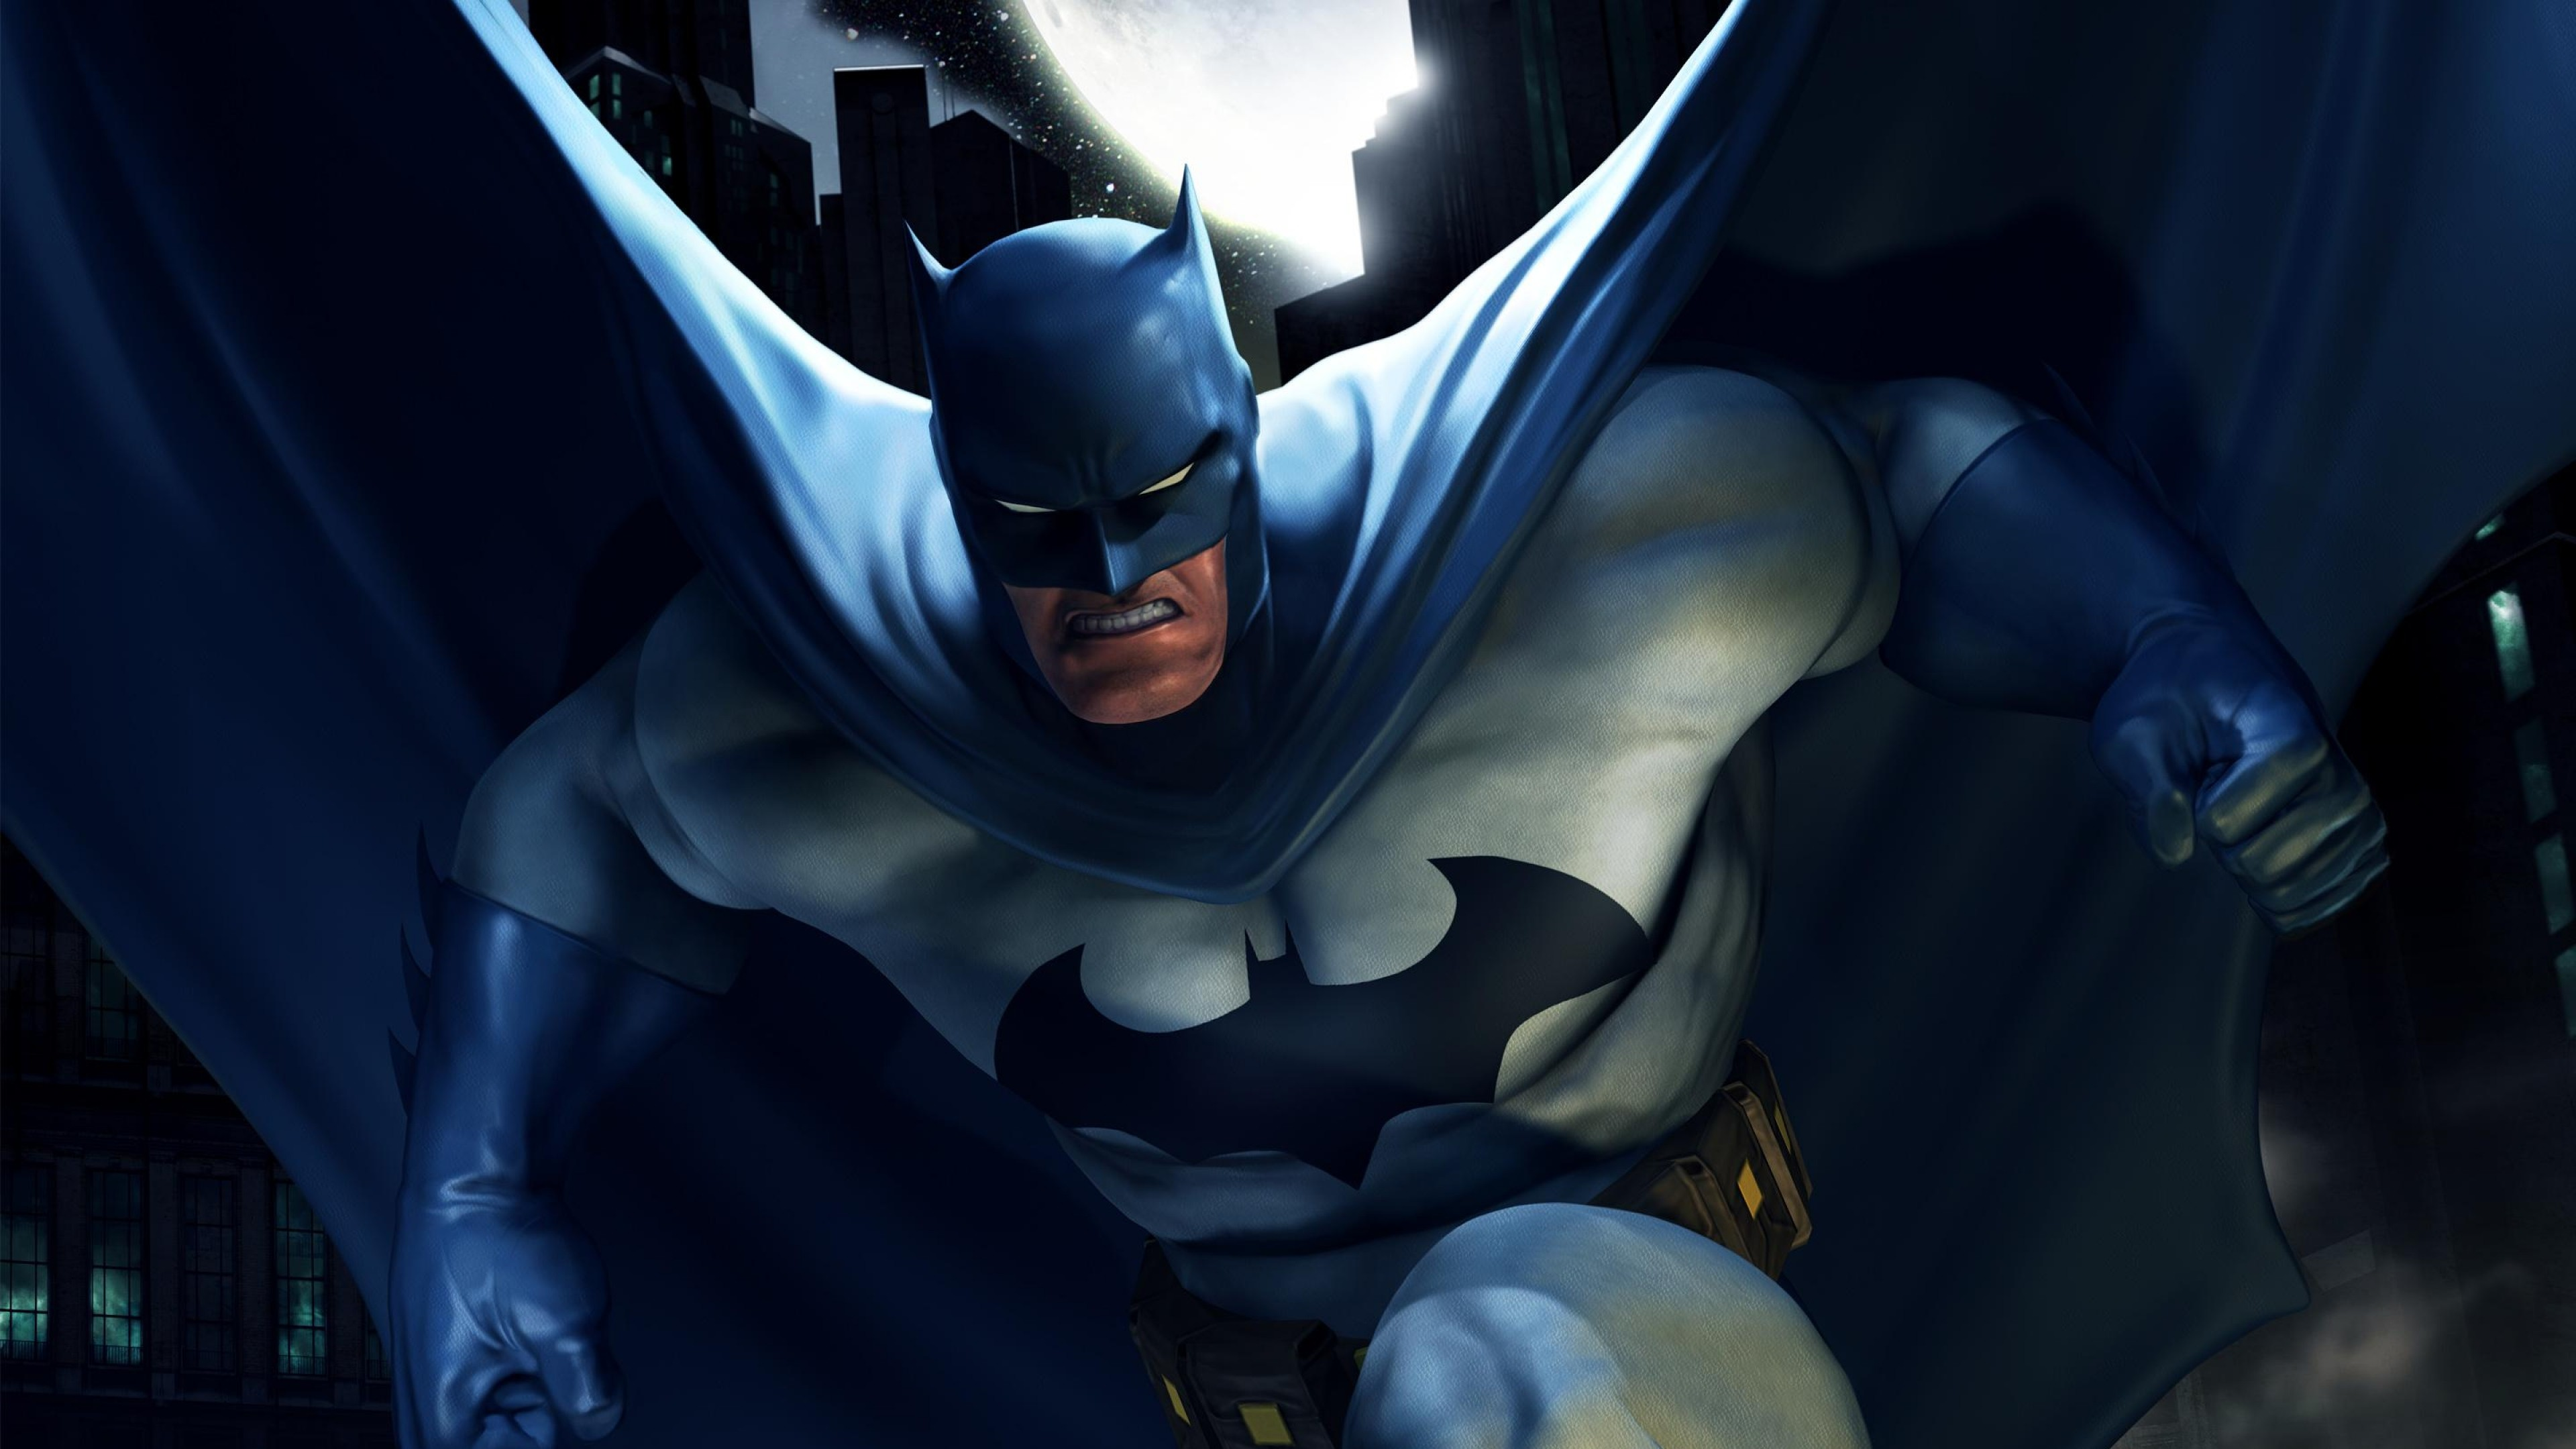 3840x2160 Preview wallpaper batman, superhero, dc comics